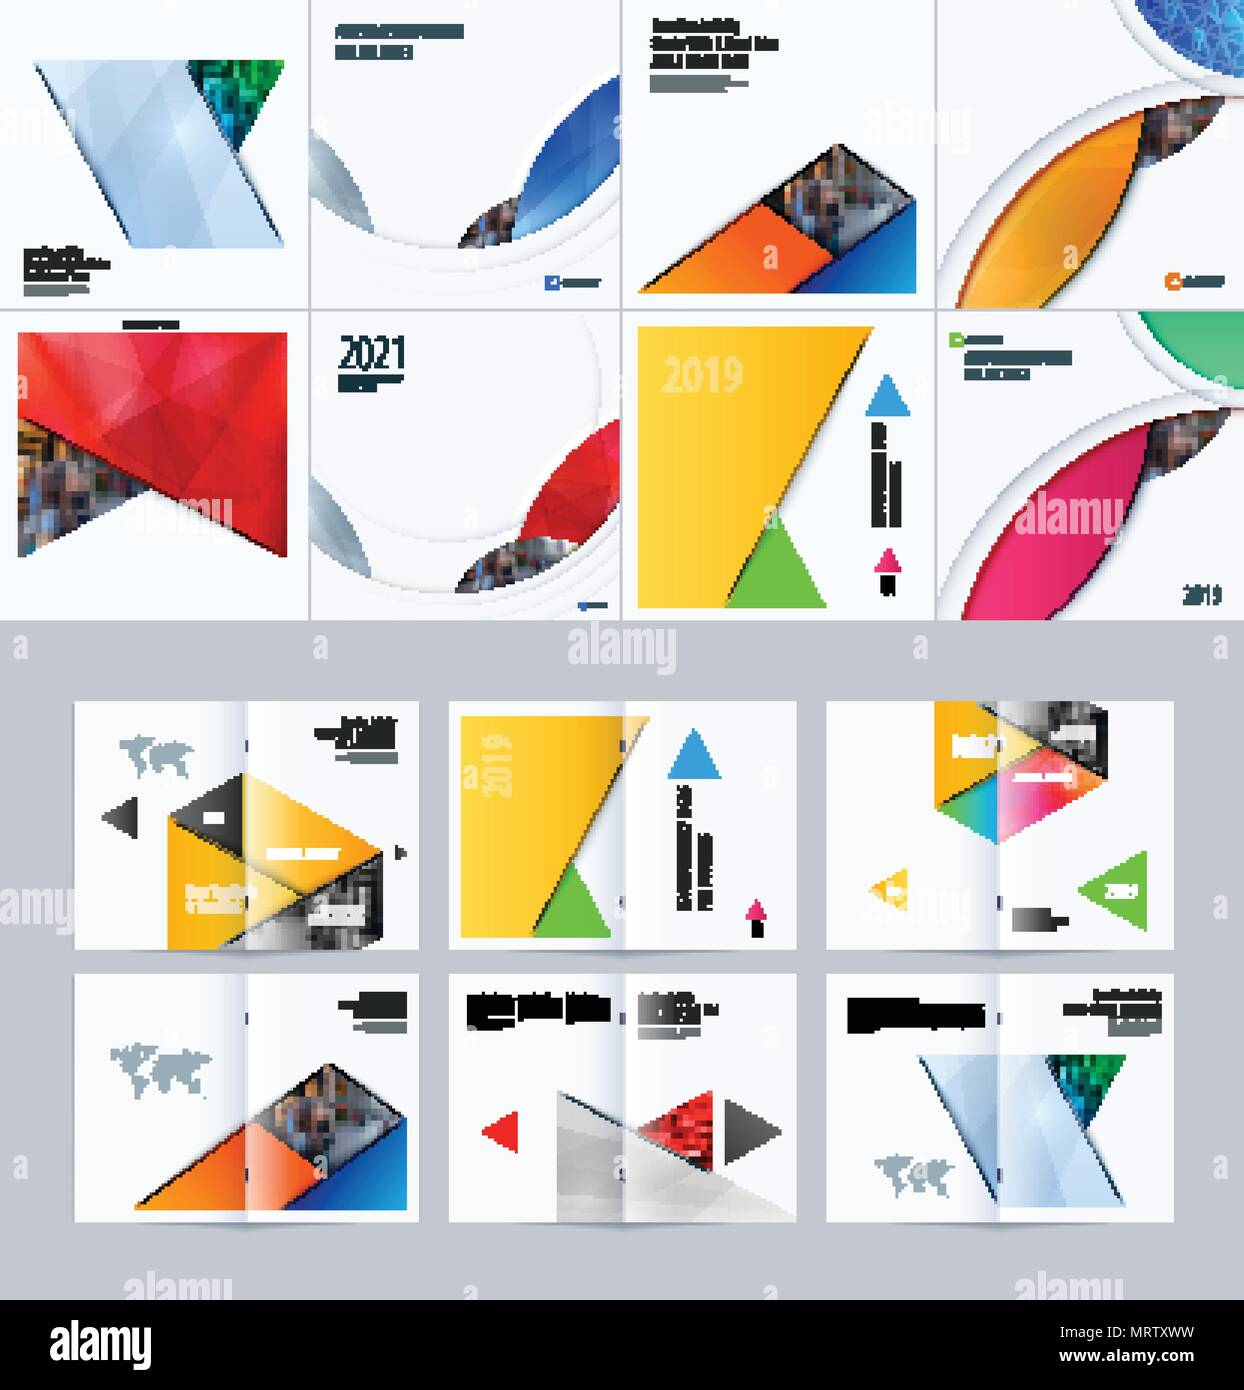 Abstract material design style of vector elements for